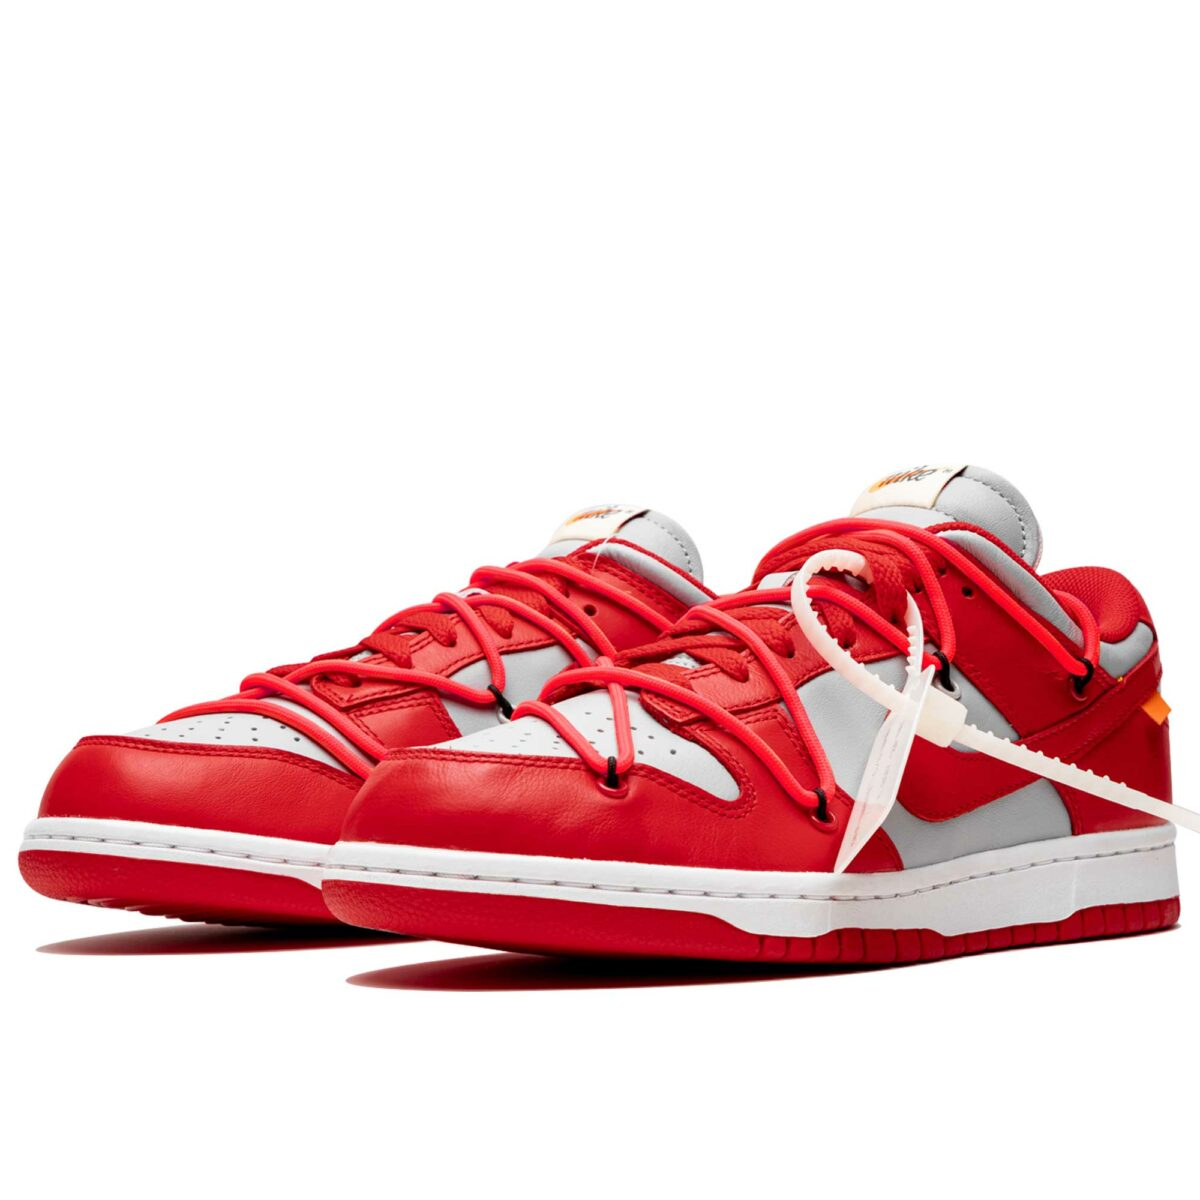 nike dunk low off-white - university red CT0856_600 купить